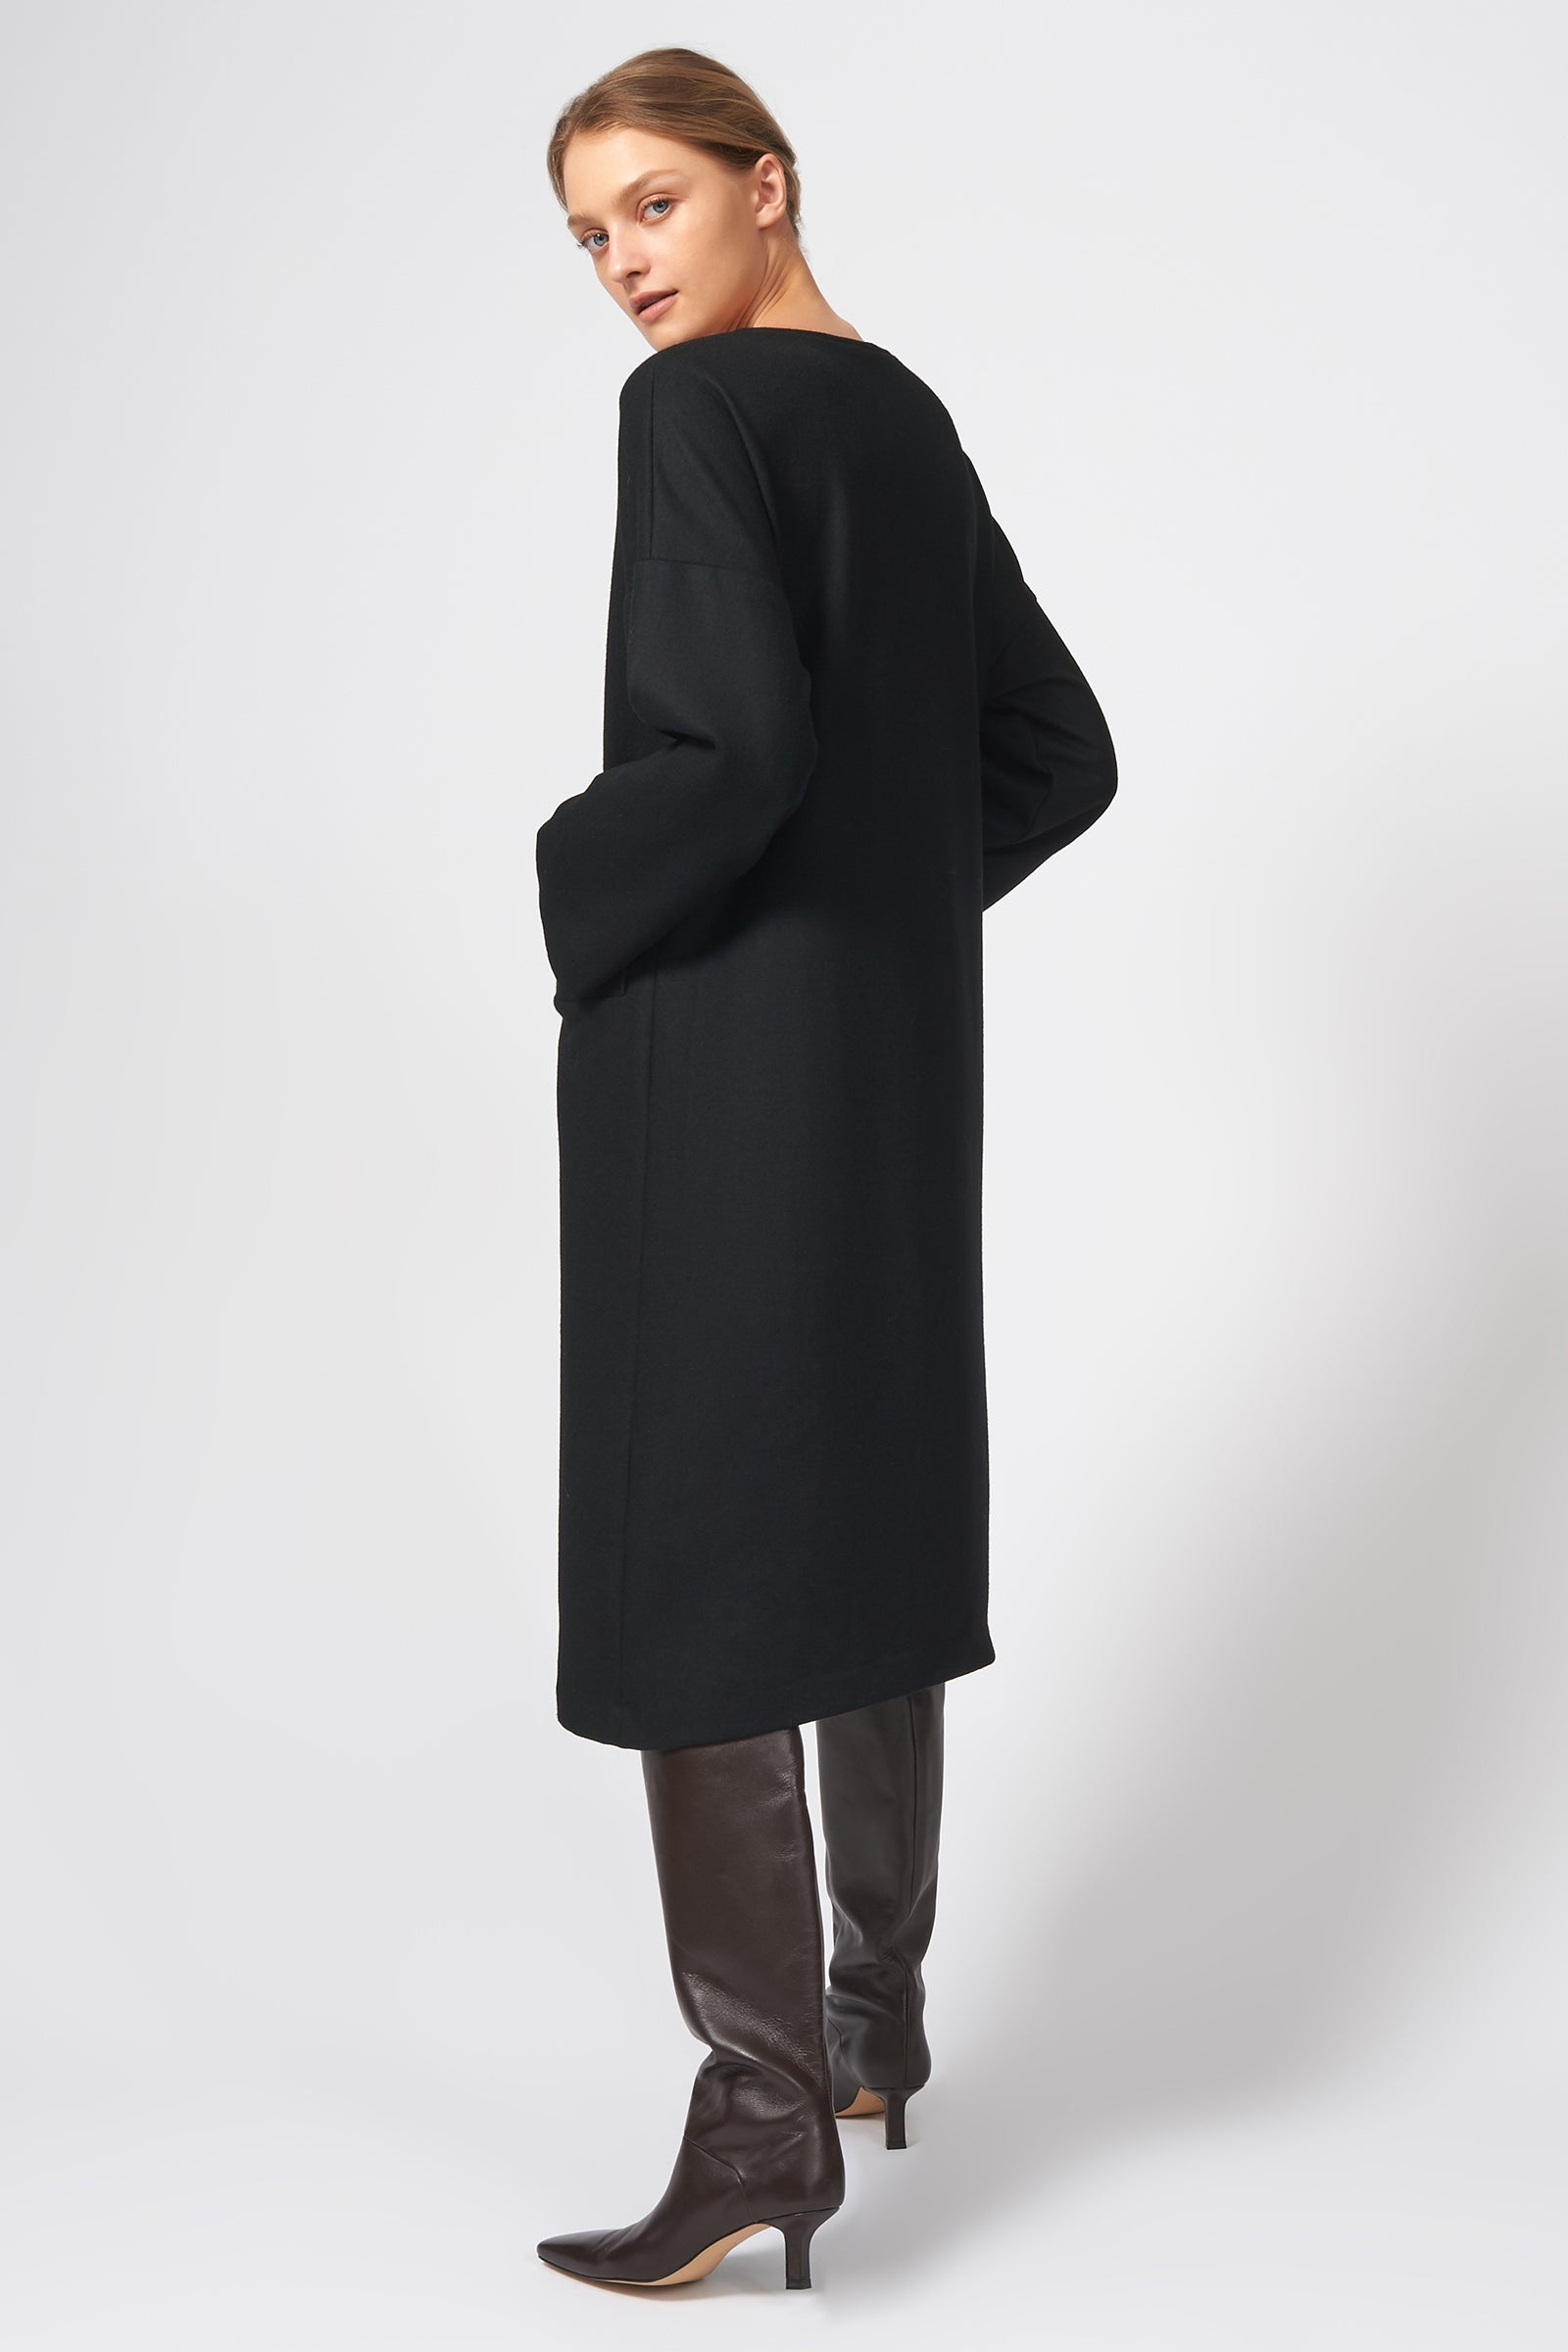 Kal Rieman LS V Neck Day Dress in Black Felted Jersey on Model Back View